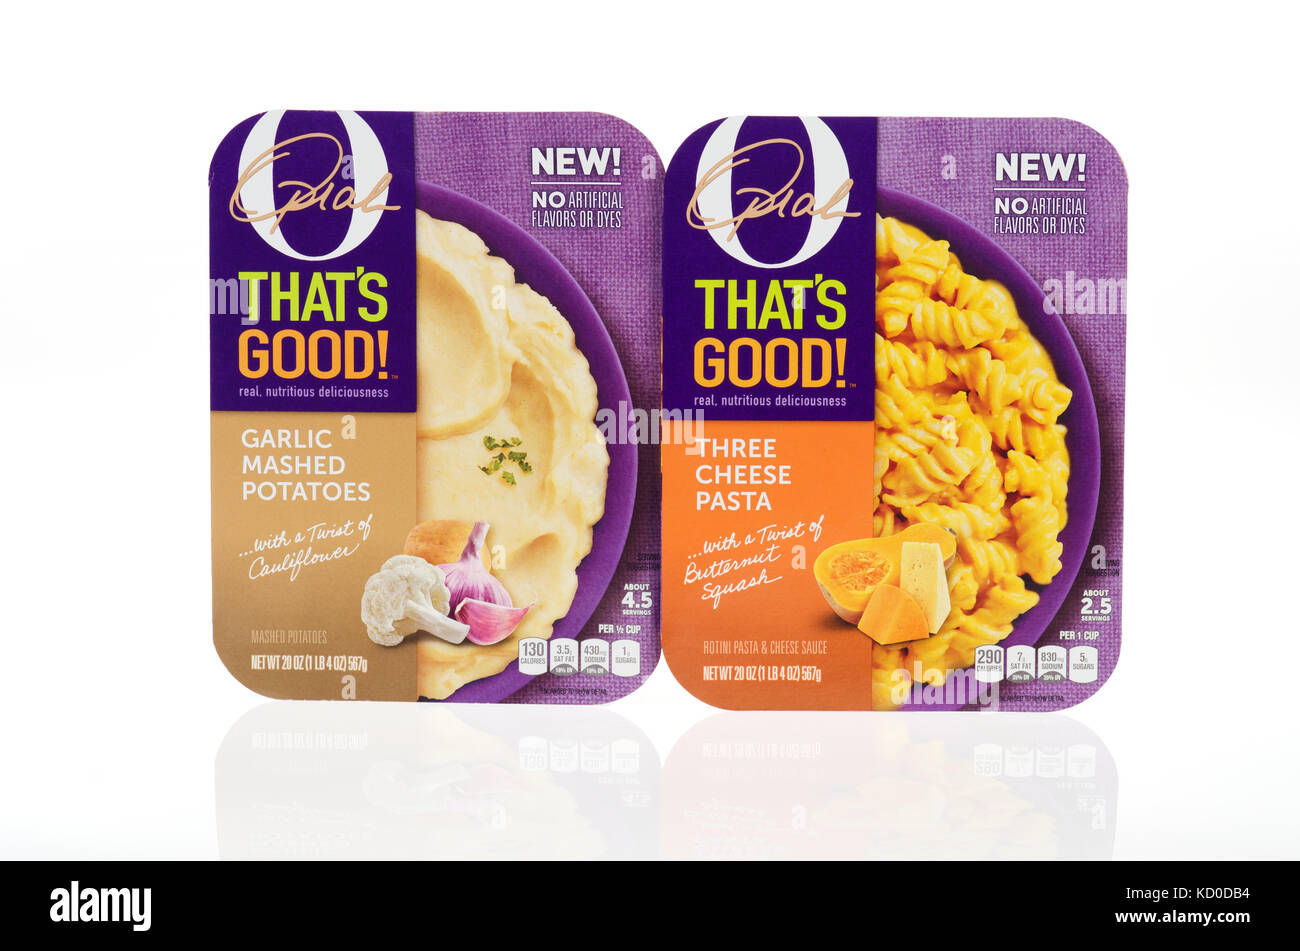 Oprah Winfrey's O THAT'S GOOD refrigerated meals of garlic mashed potatoes and three cheese pasta in packaging - Stock Image